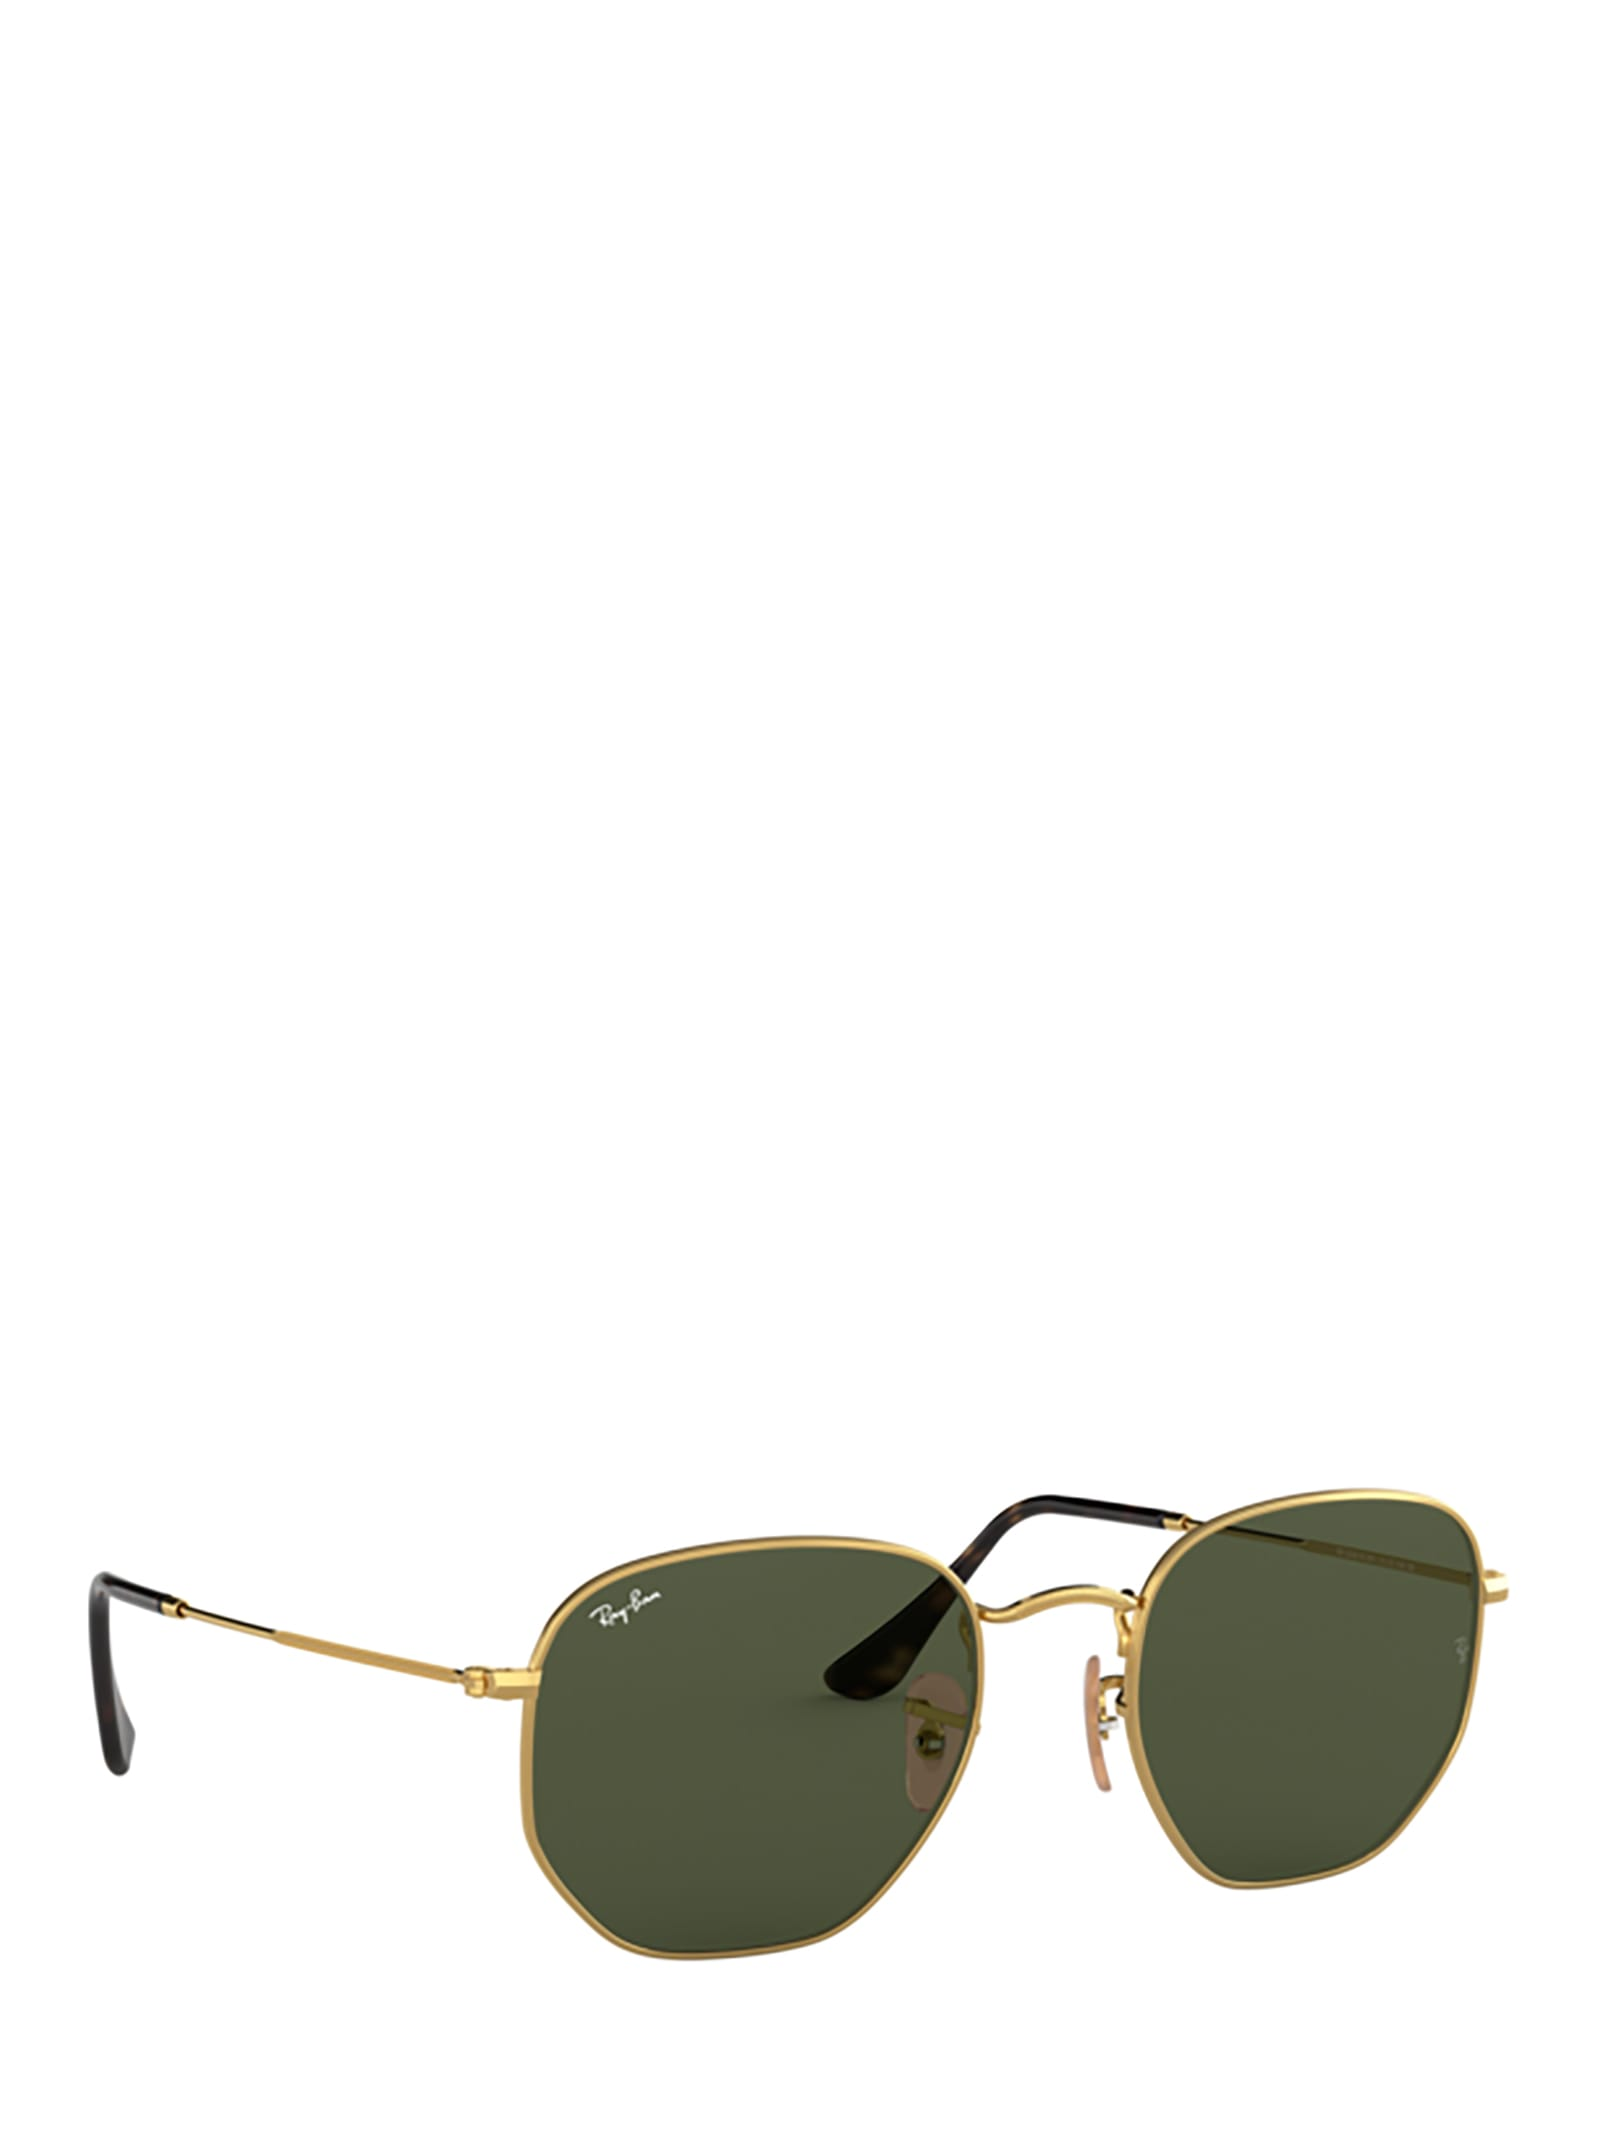 Best Authentic Ray-ban Rb3548n Arista Sunglasses